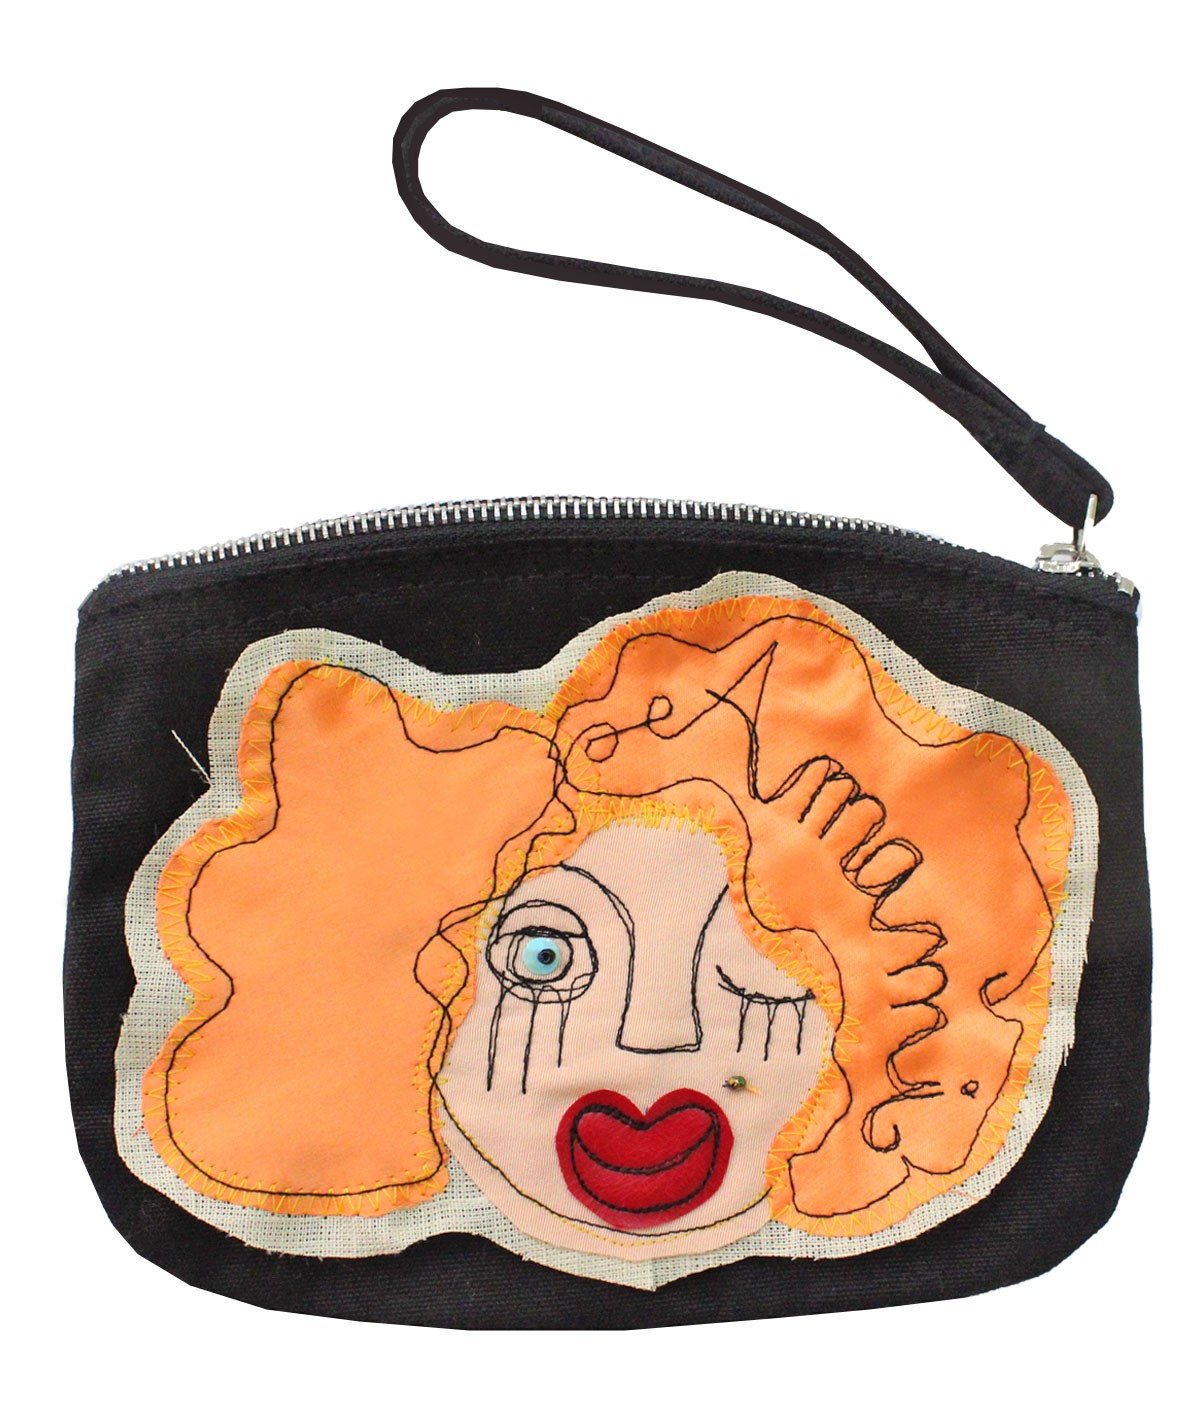 Dolly - cotton pochette